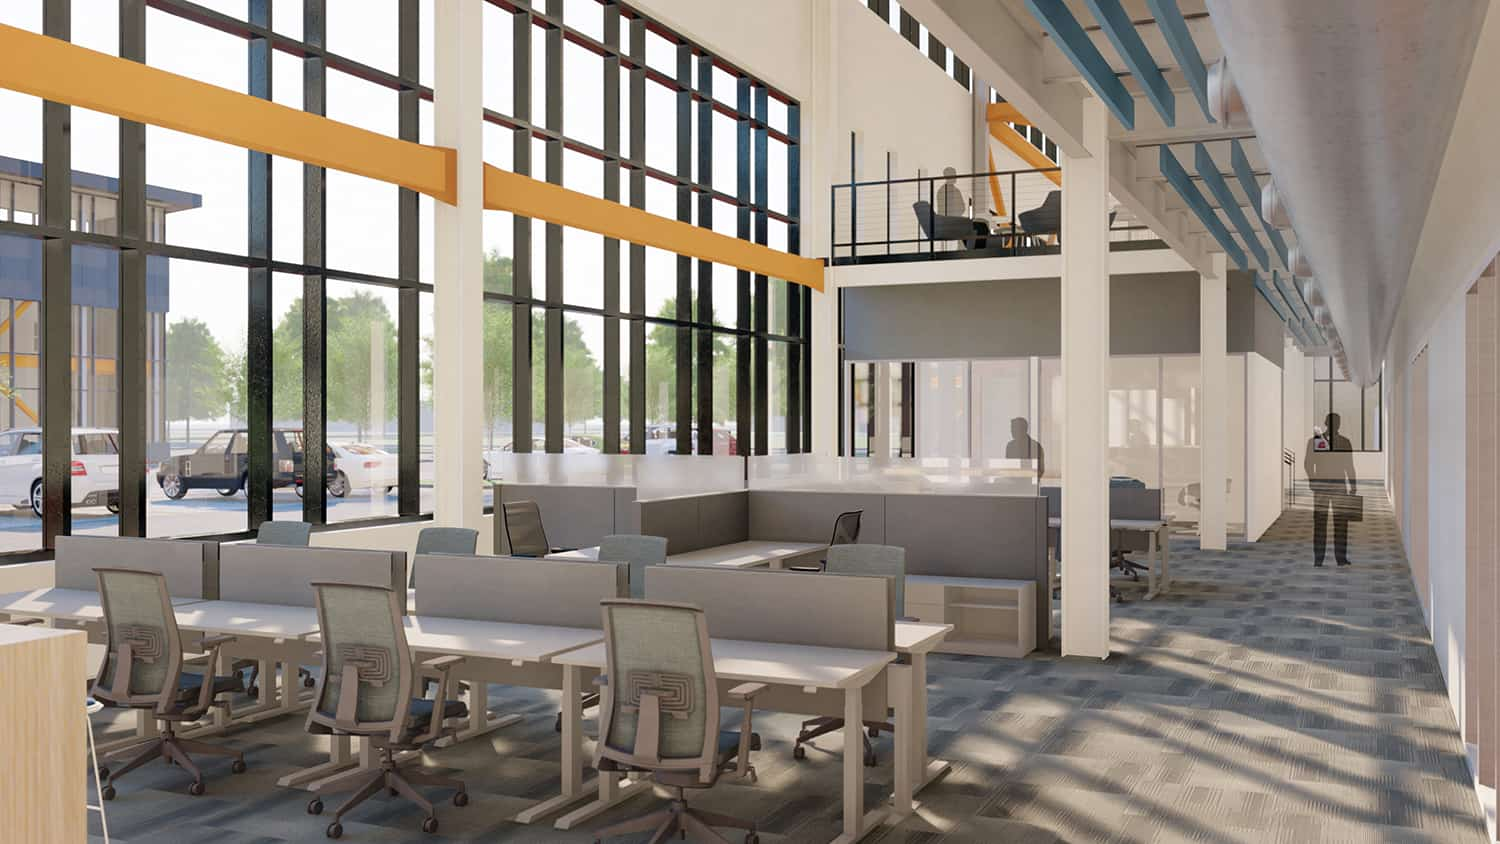 Open workstations with two-story windows and visual access to the second floor.